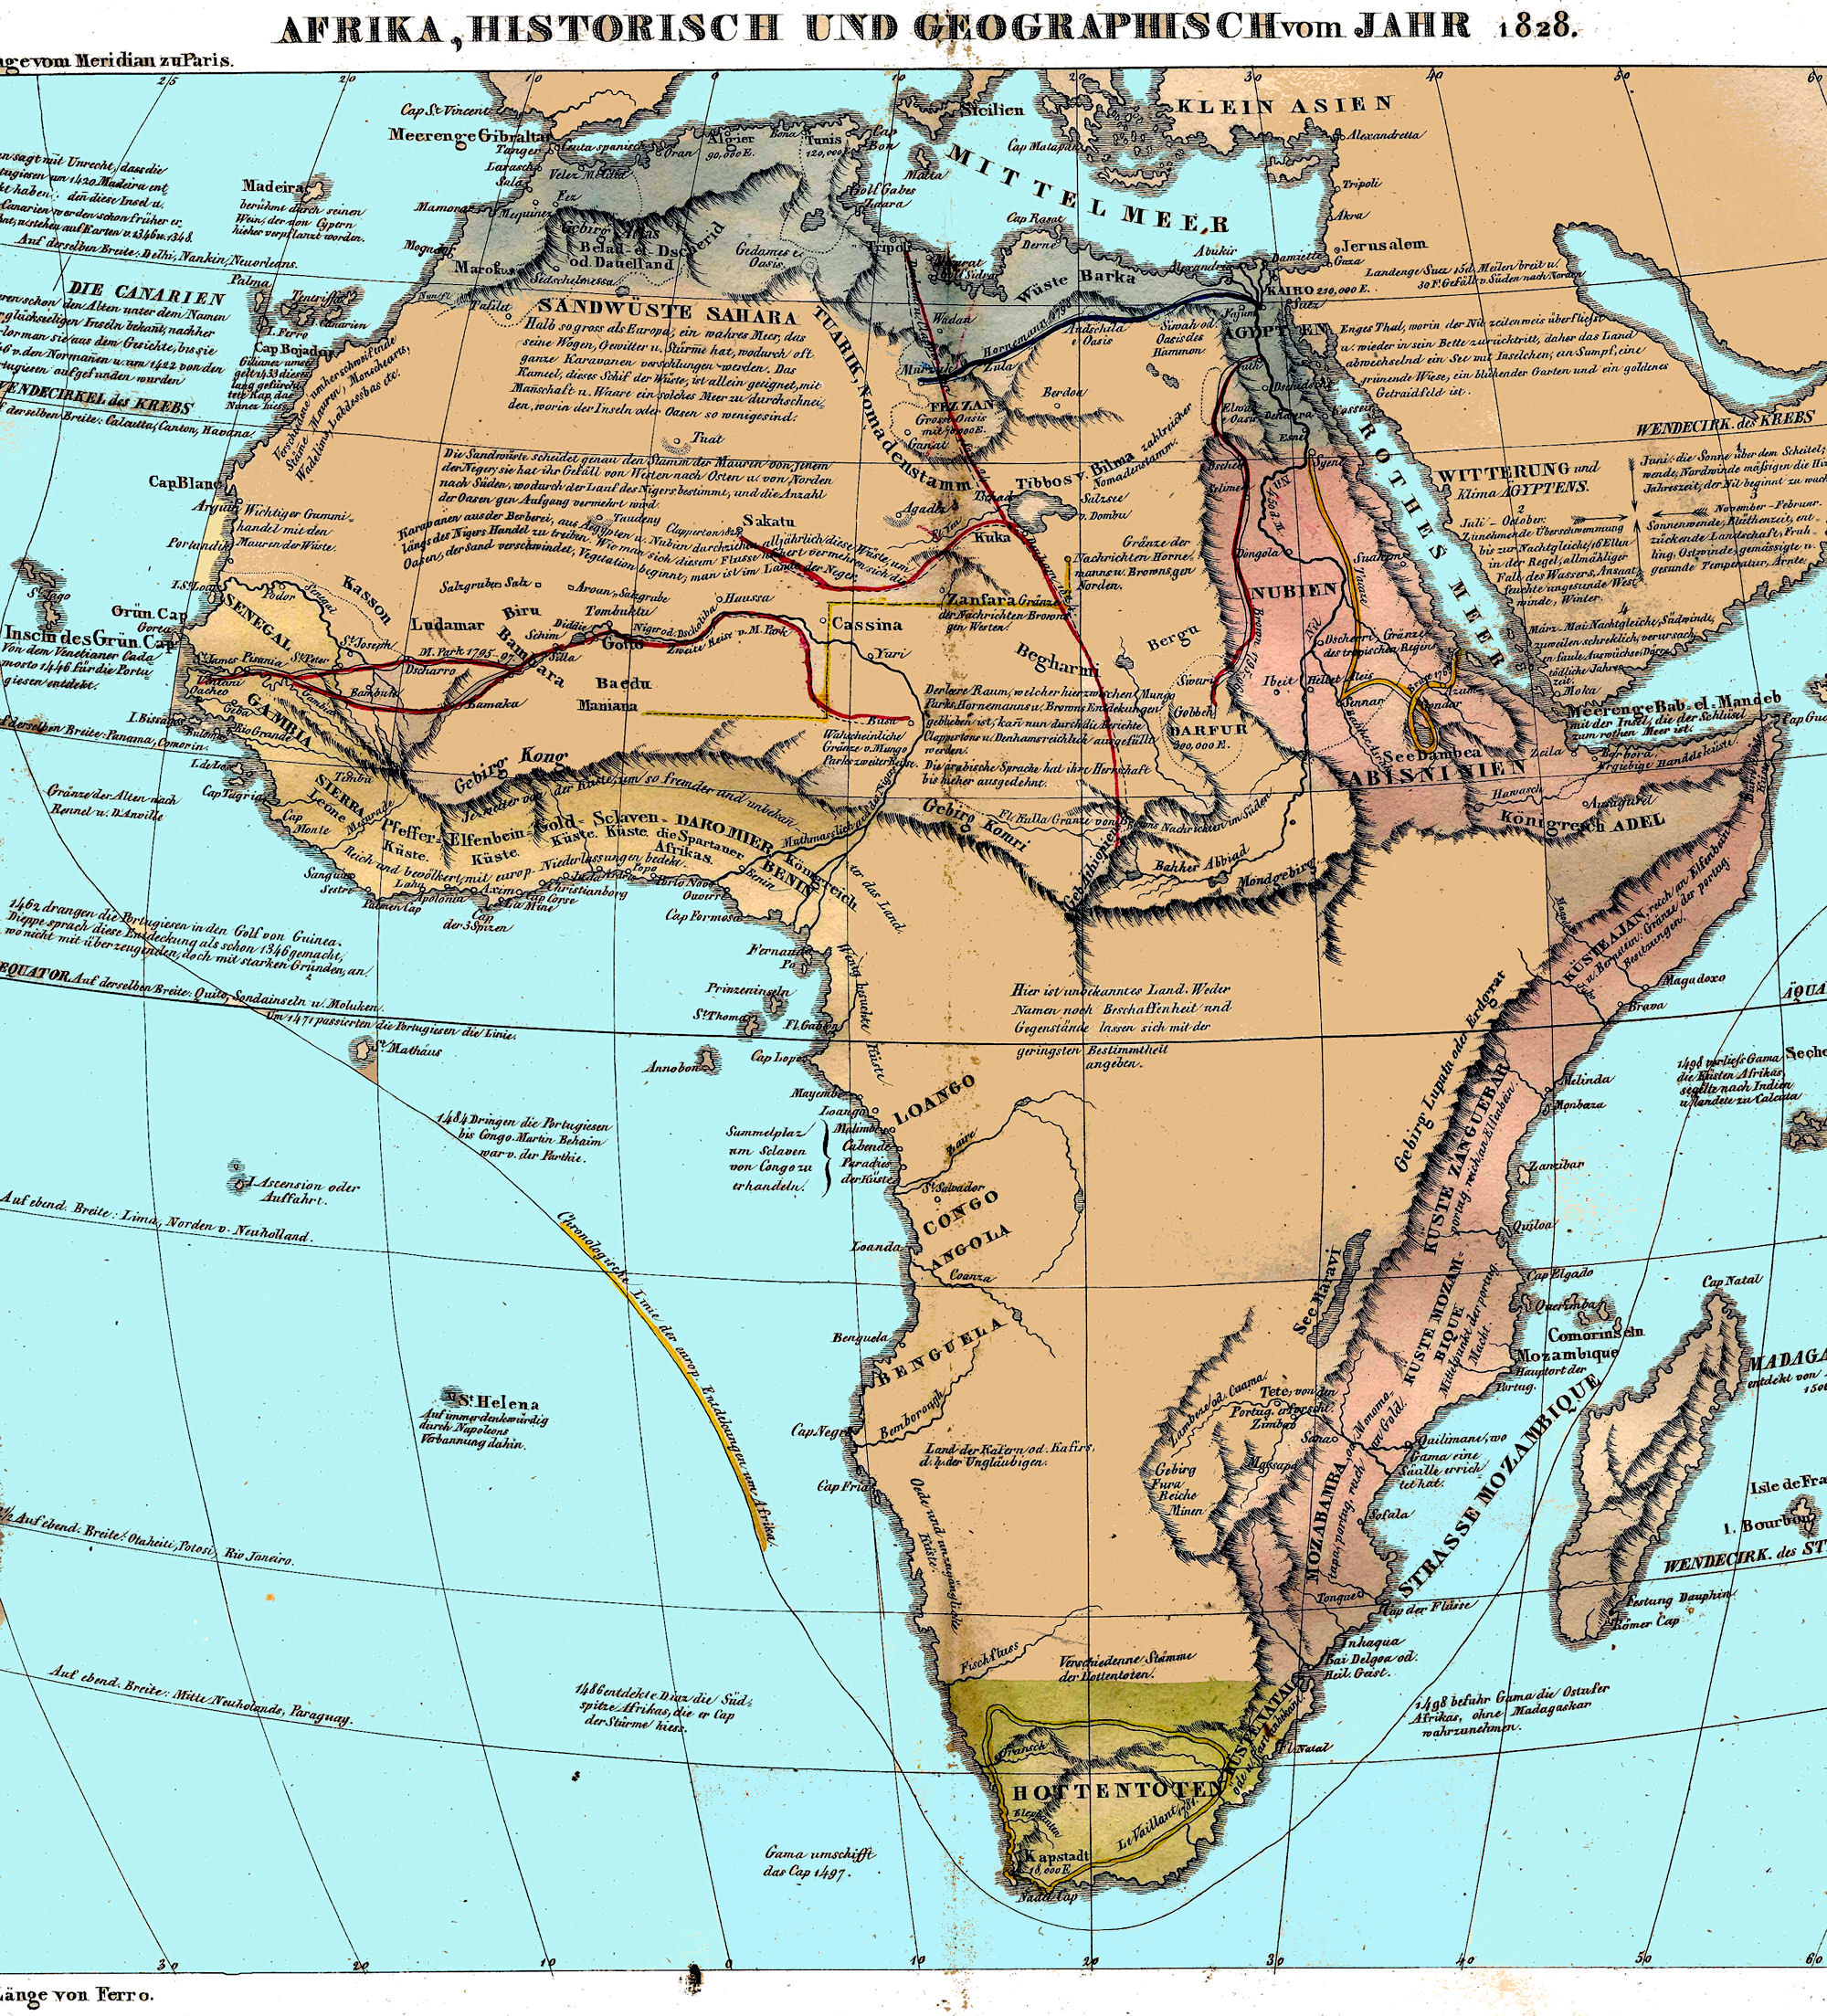 scramble to africa The 19th-century scramble for africa saw the great powers rush to control land so they could exploit natural resources today, there is a new scramble for africa taking place, and the continent .